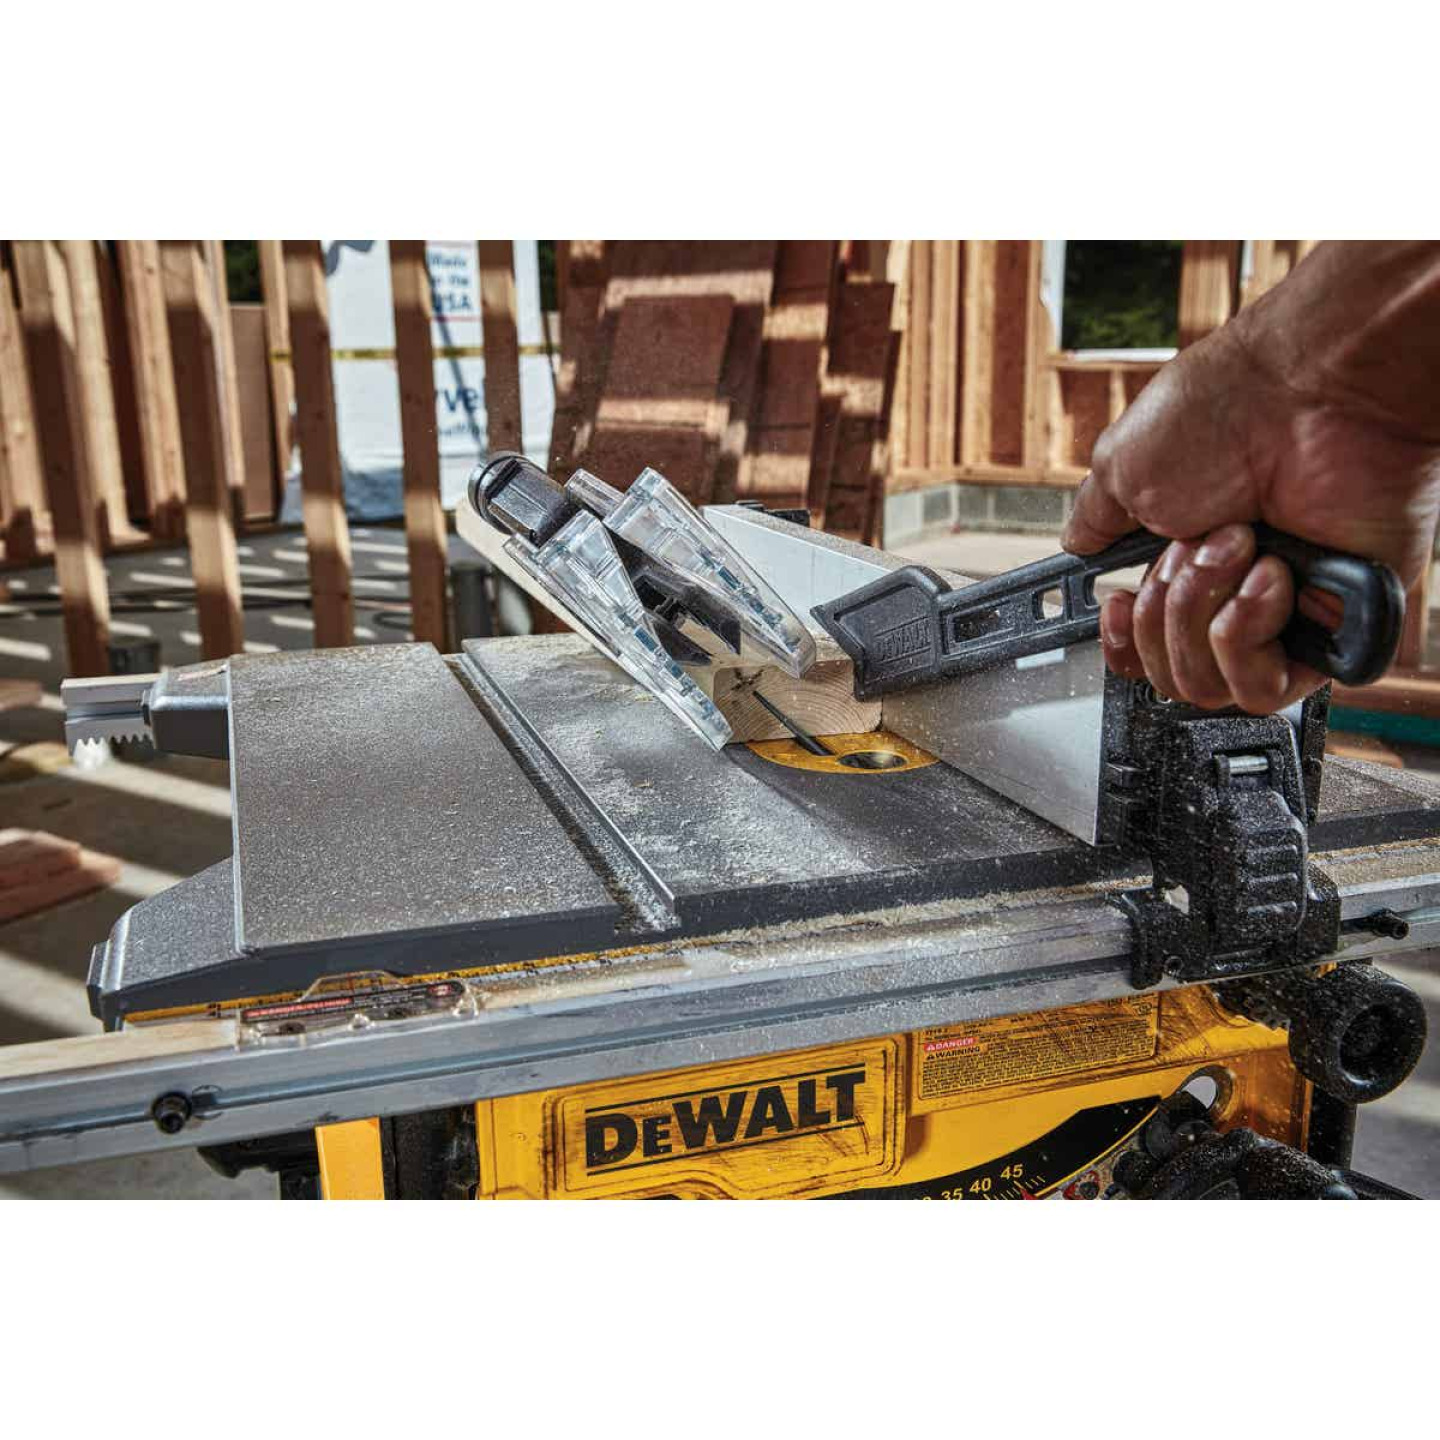 DeWalt 15A 8-1/4 In. Compact Job Site Table Saw w/Site-Pro Modular Guarding System Image 2